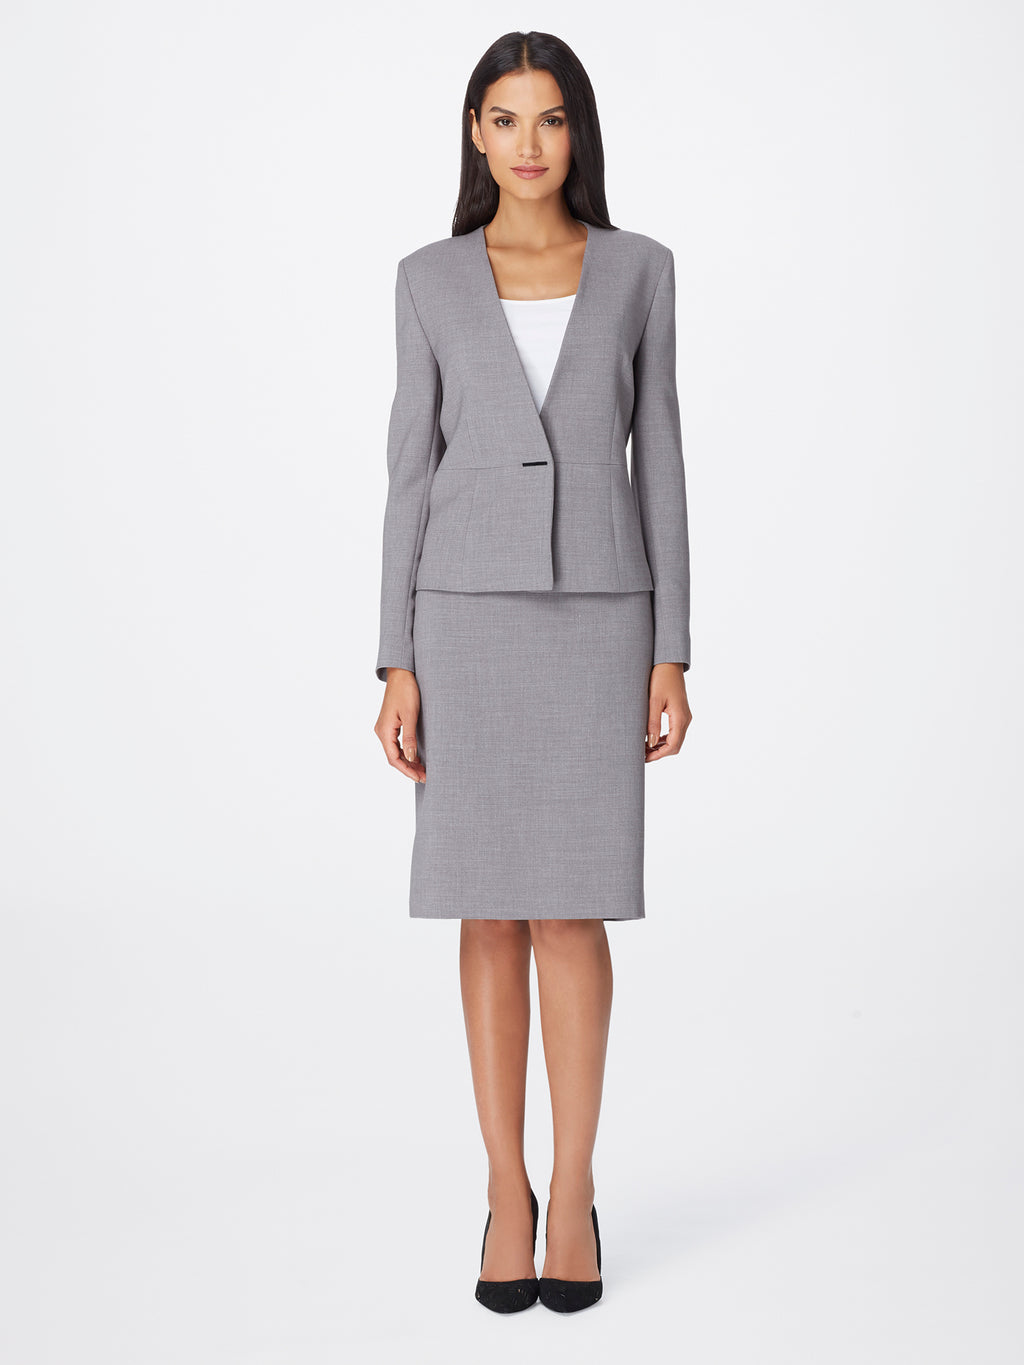 Bi-Stretch Peplum Skirt Suit